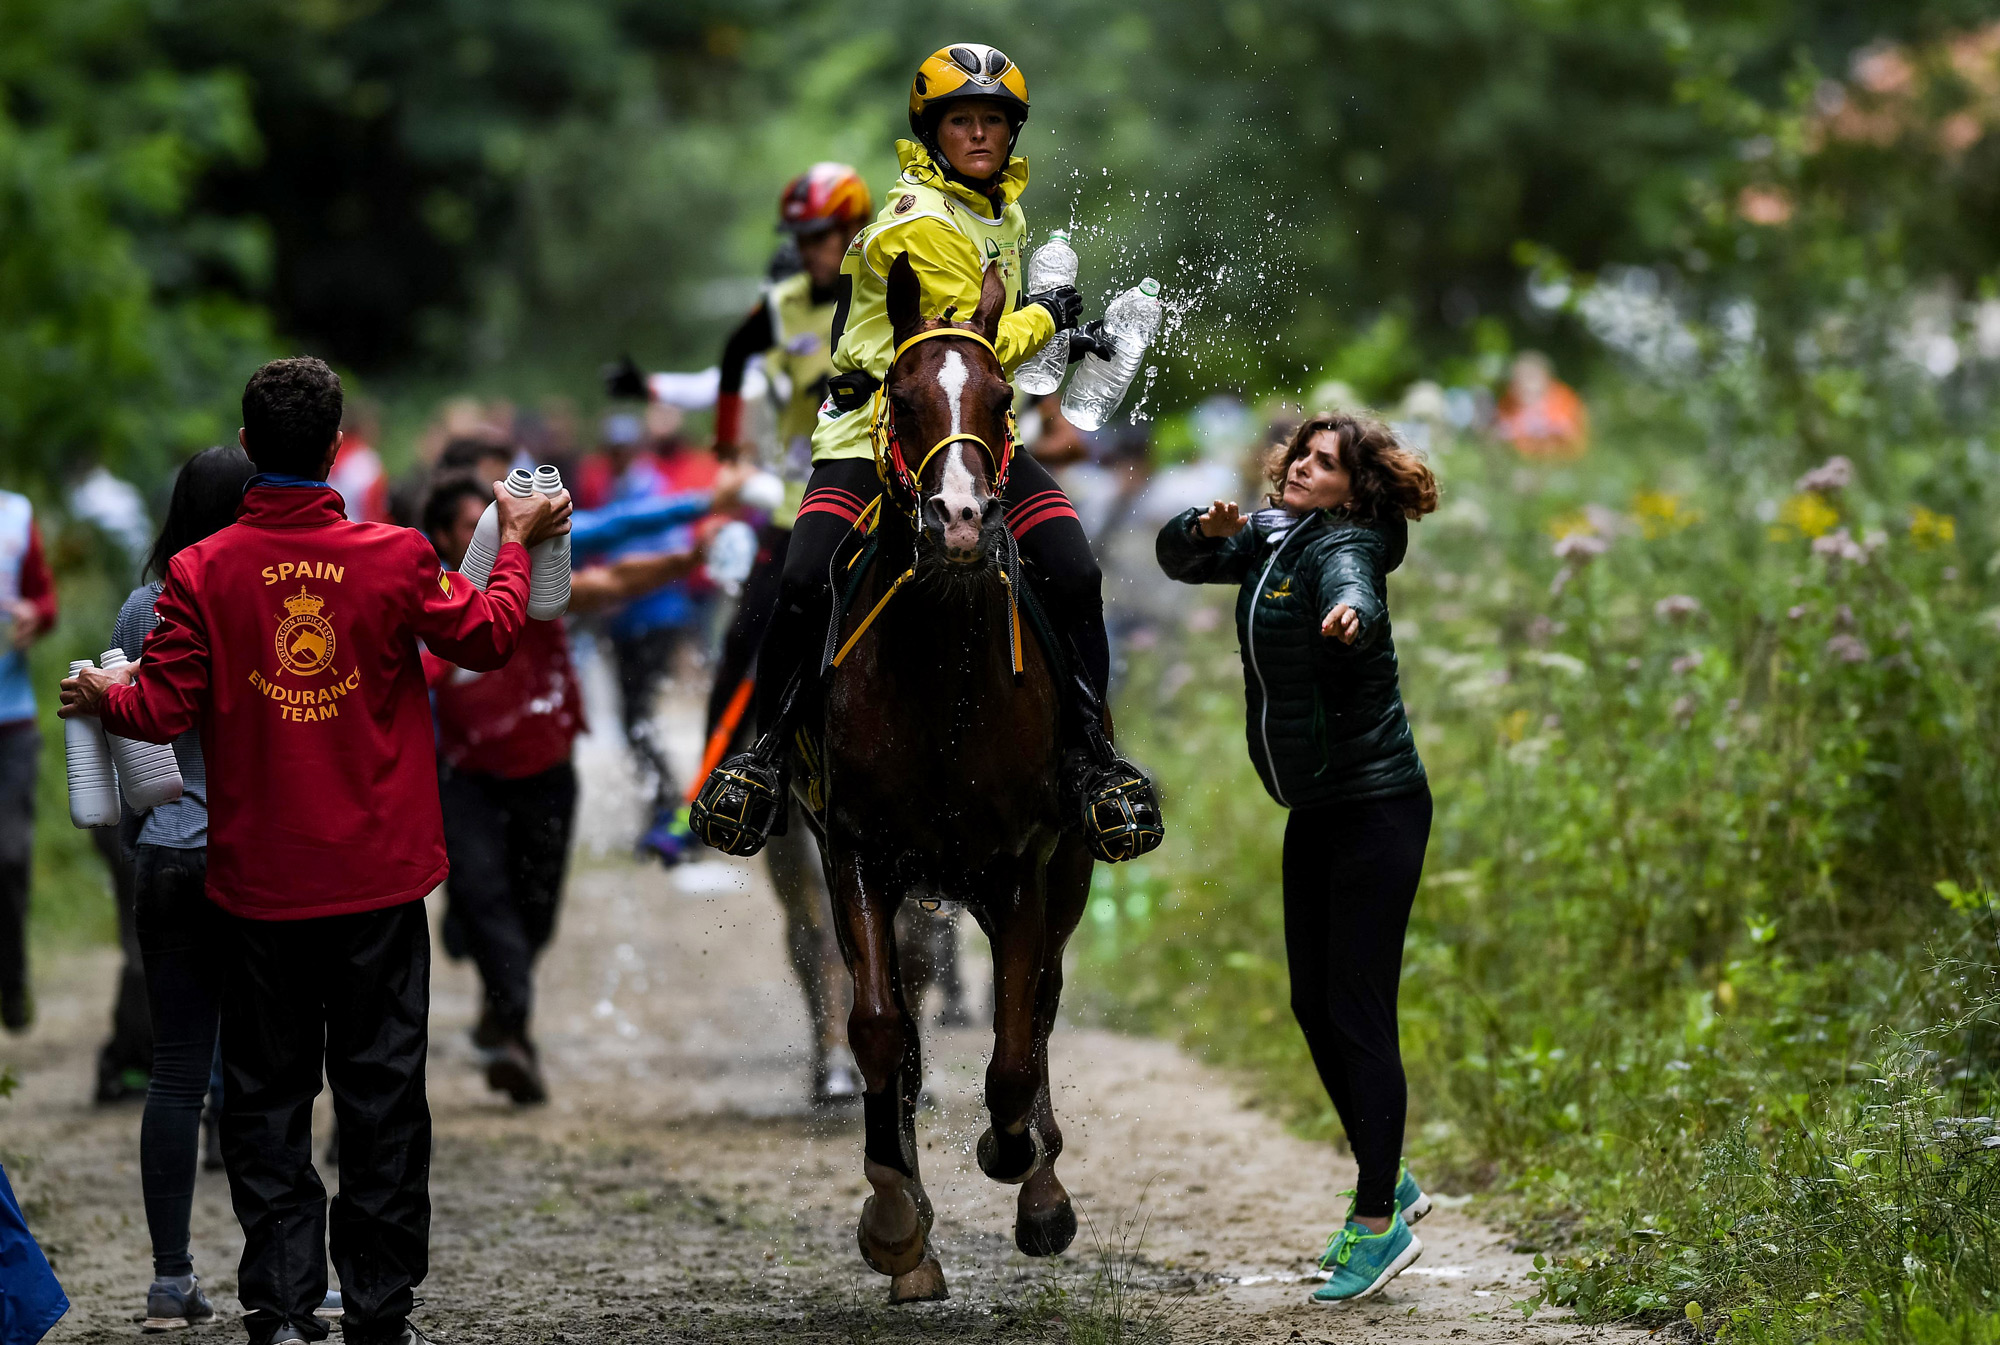 Aubepines Fei 1: Endurance 2017: A Year To Remember